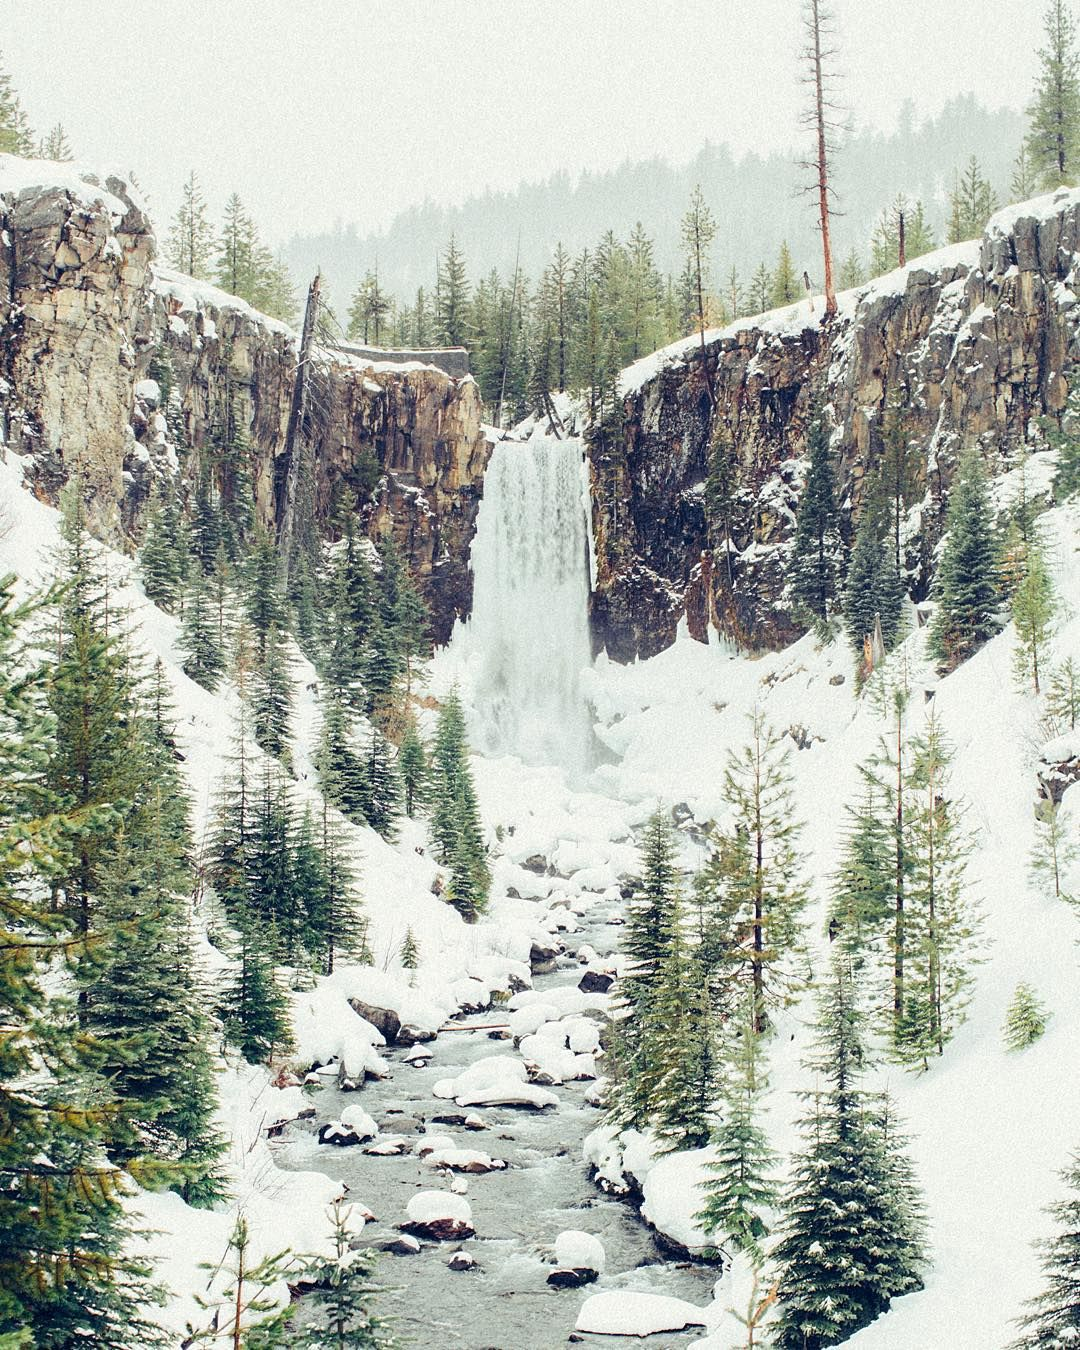 Slush walk snowball fight and wet pants. All worth it to come see Tumalo Falls in the winter. by hoxiesox